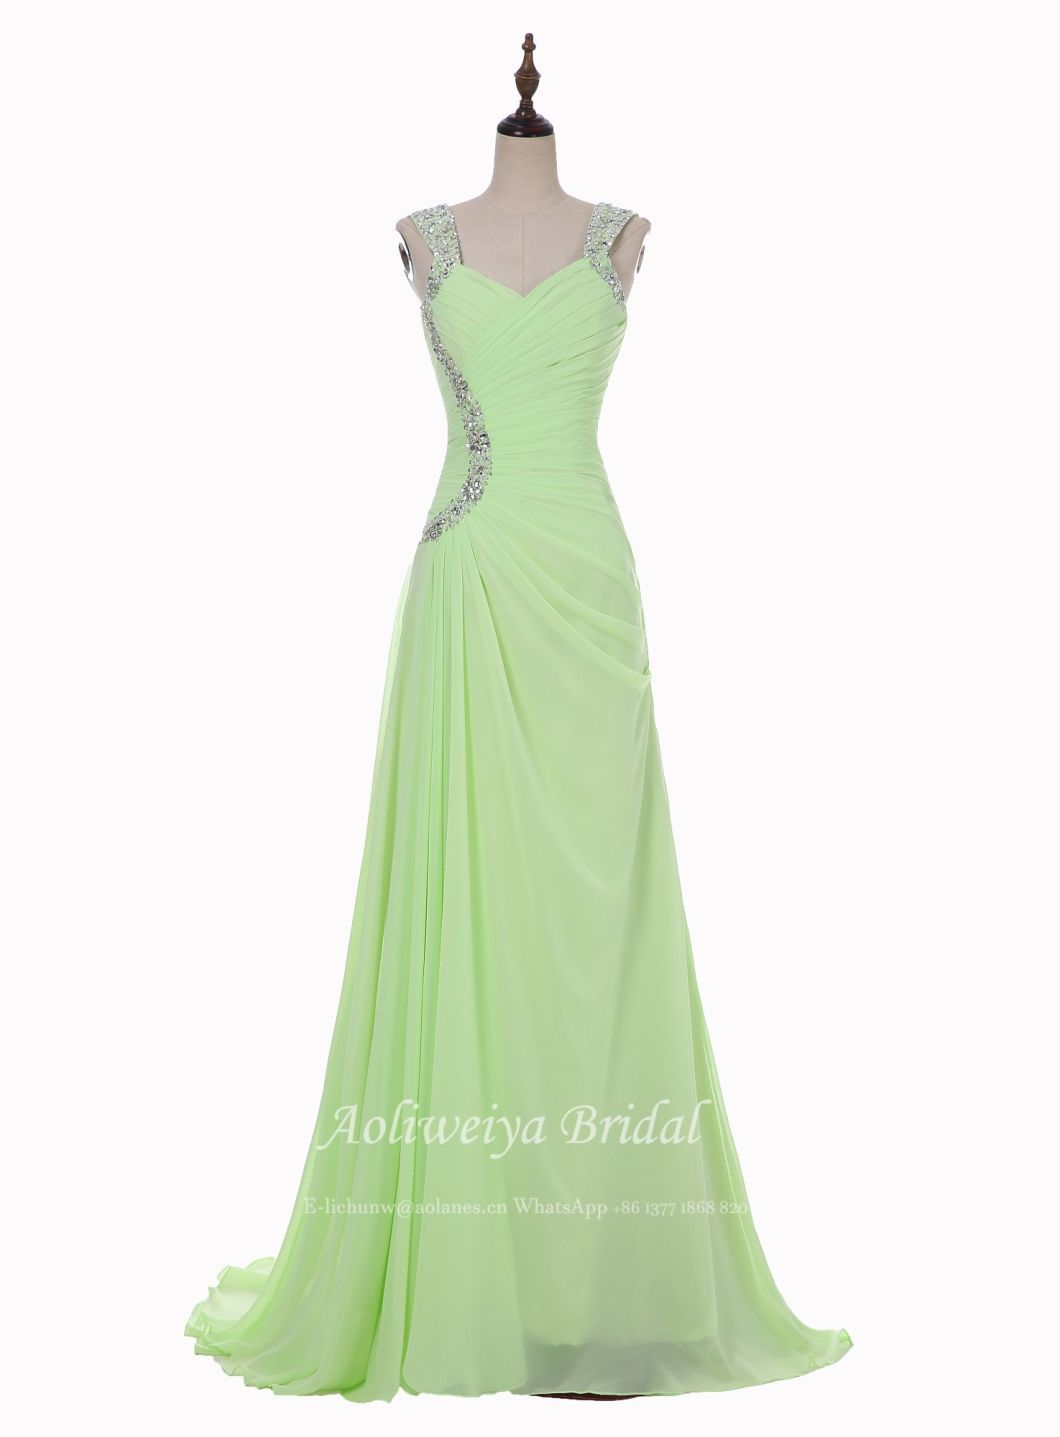 Aolanes Green Bride Evening Dress Any Color